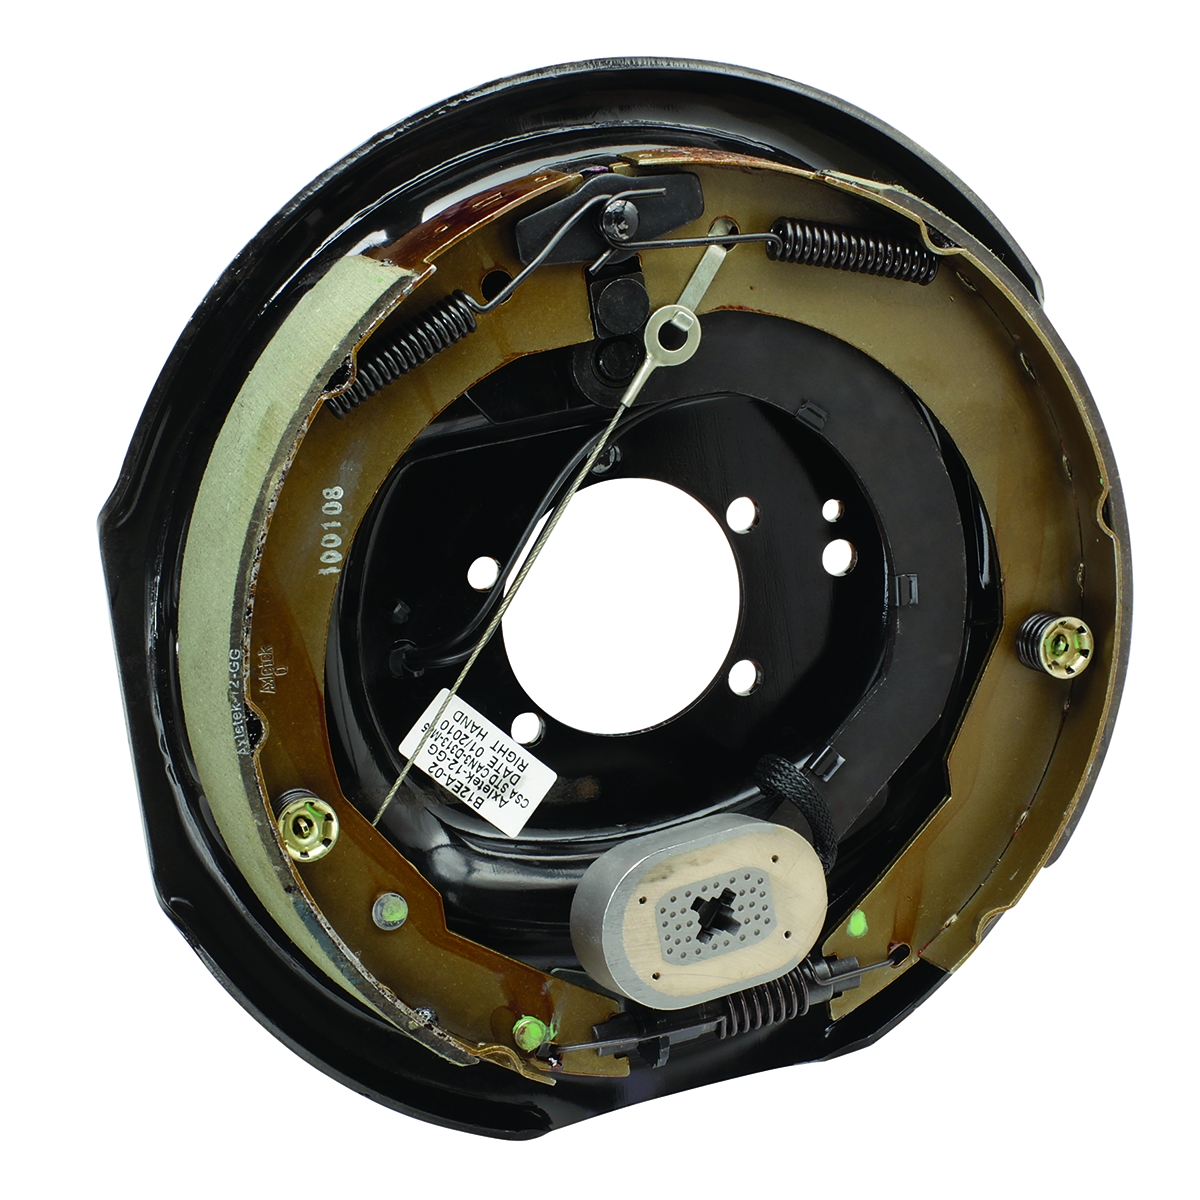 54801-007 Tekonsha Trailer Brake Assembly 12 Inch Diameter X 2 Inch